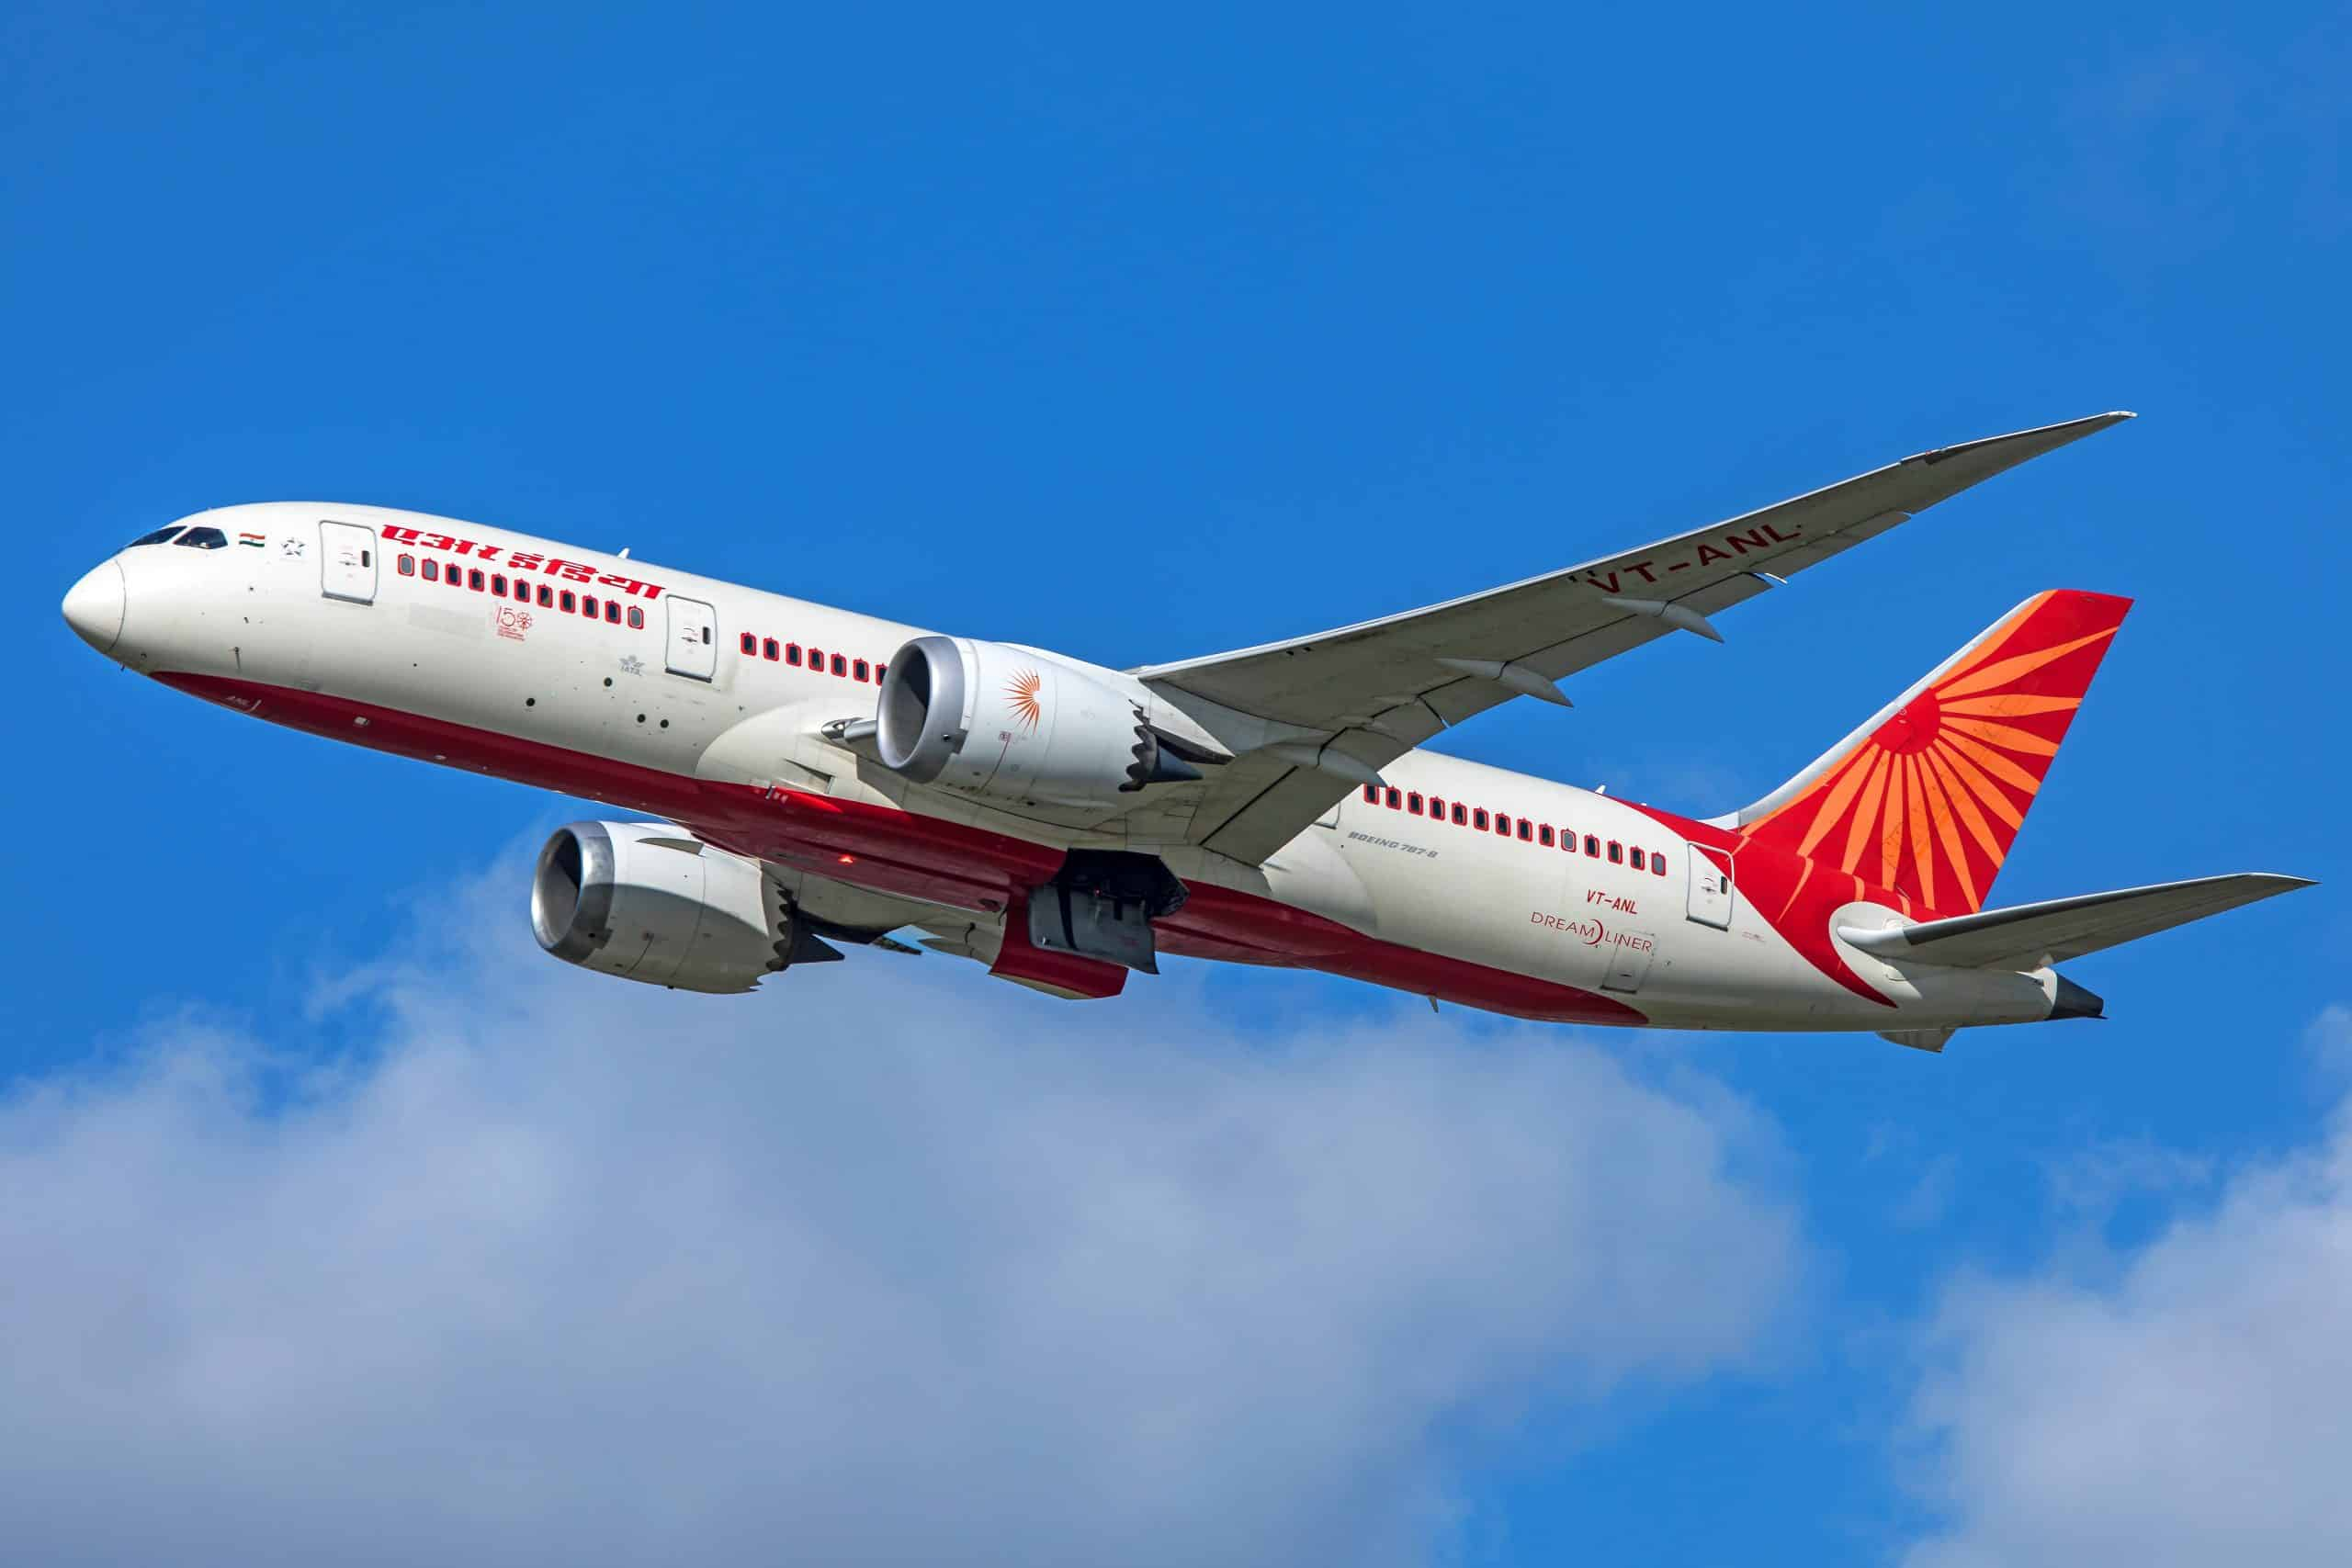 Air India pilots seek government's immediate intervention over indefinite and unilateral salary cuts